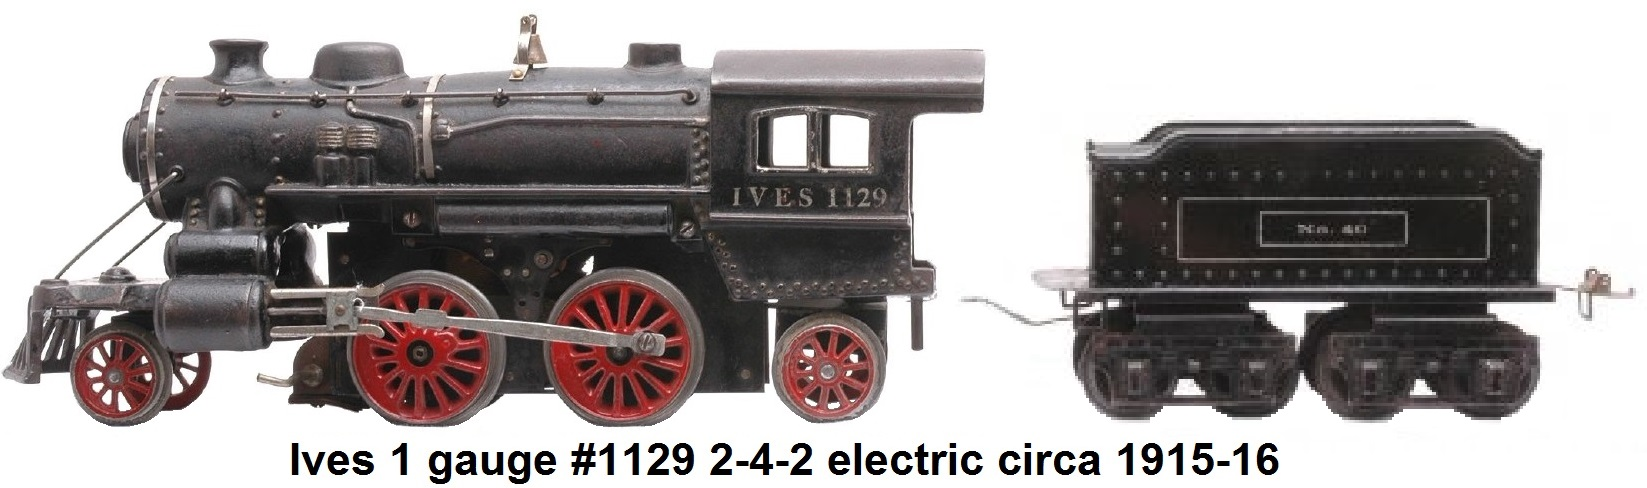 Ives #1129 2-4-2 Steam Outline #1 gauge electric Circa 1915-1916